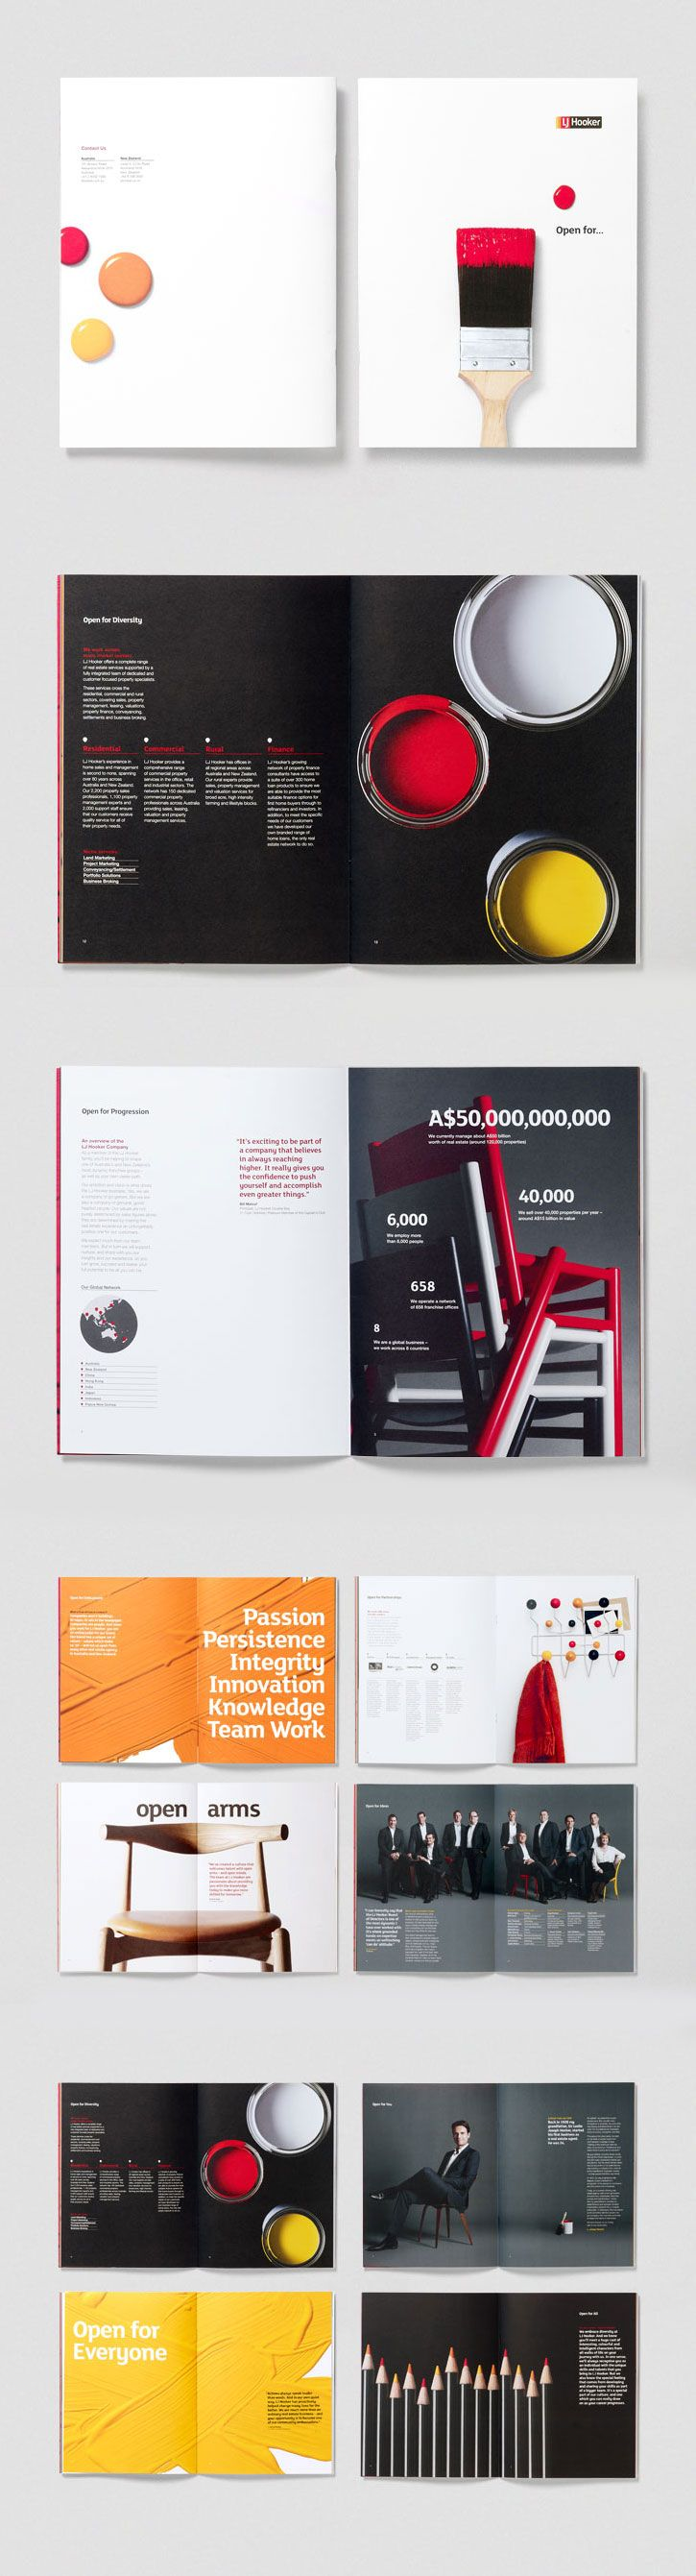 Brand Guidelines for LJHooker - moffitt.moffitt.                                                                                                                                                                                 More